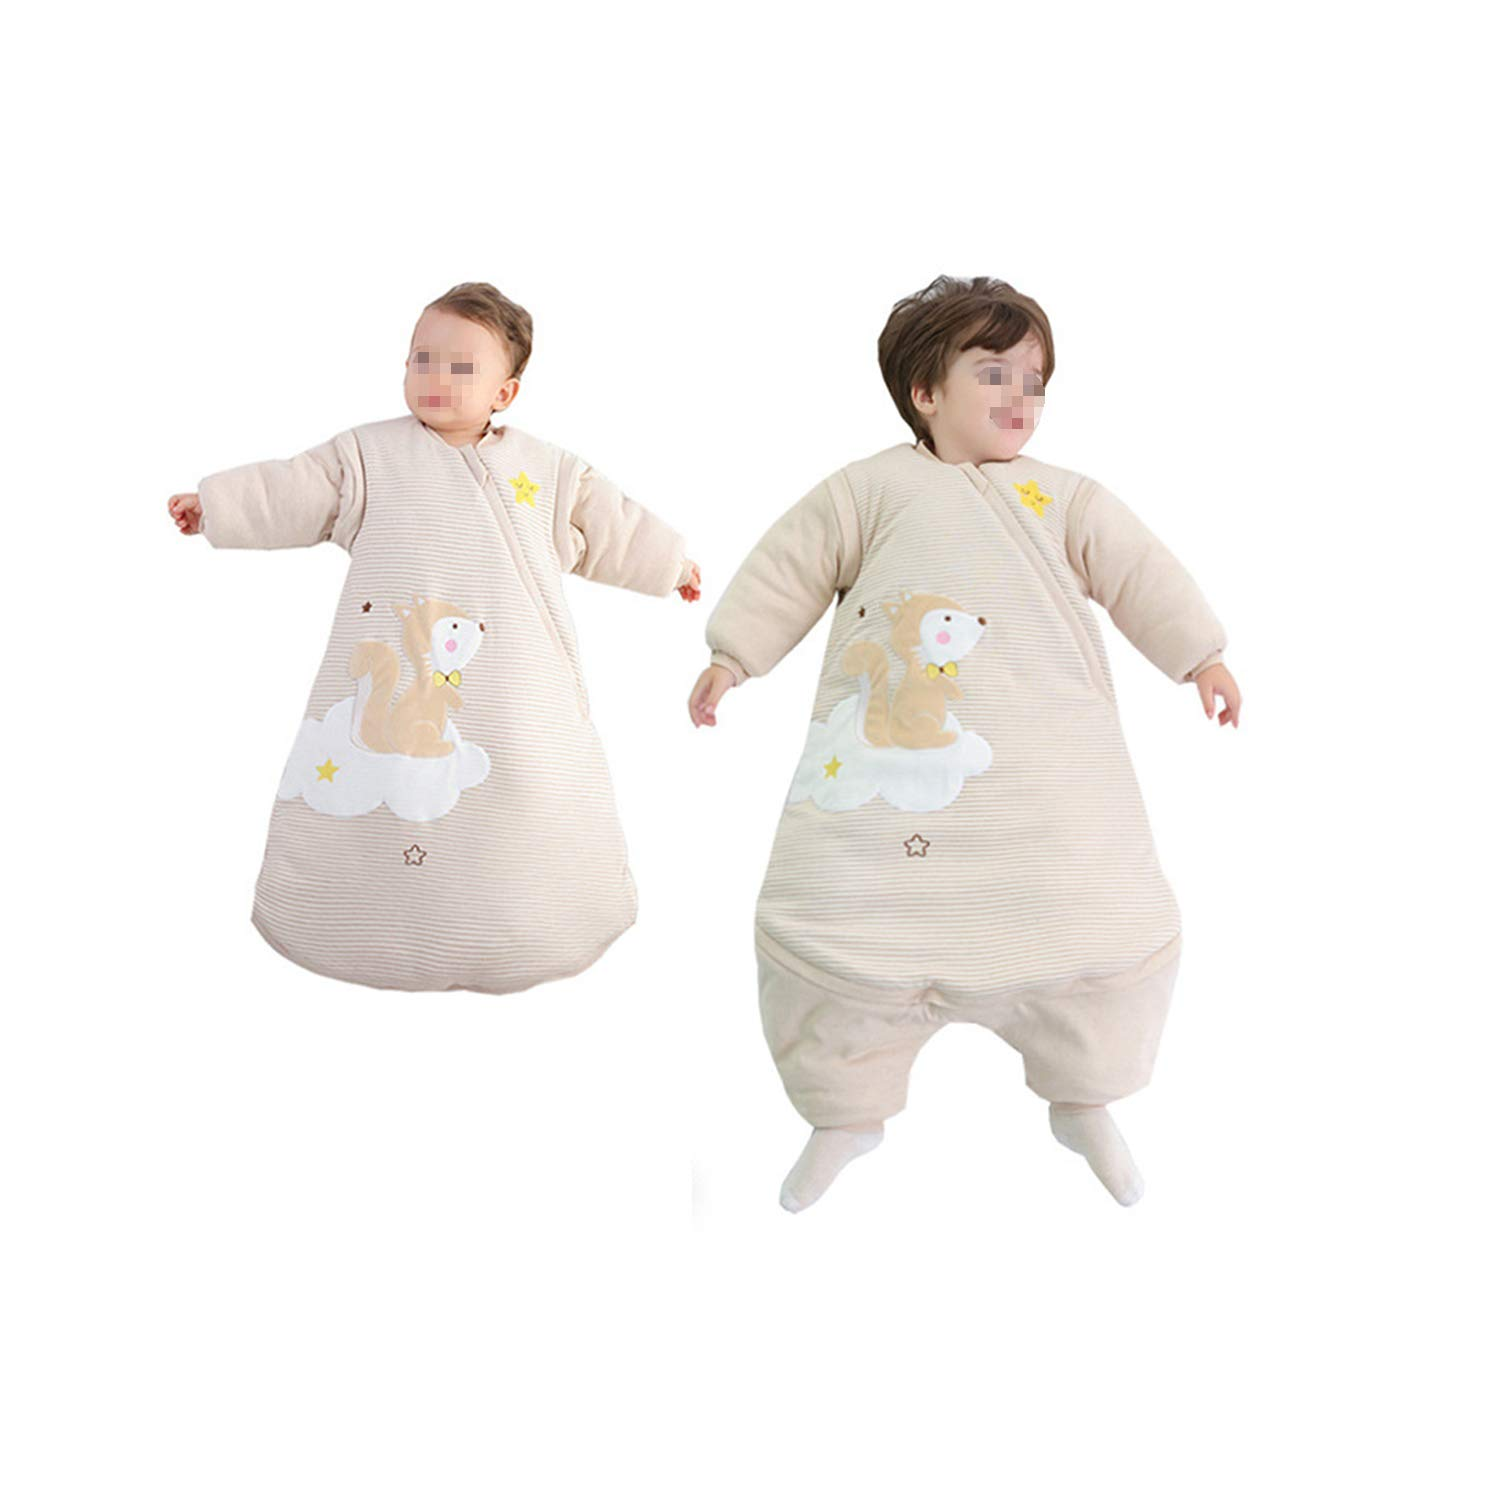 the latest 5c10f 10f5e Childrens One-piece Pajamas Suitable For 1-6 Years Old 3.5 ...